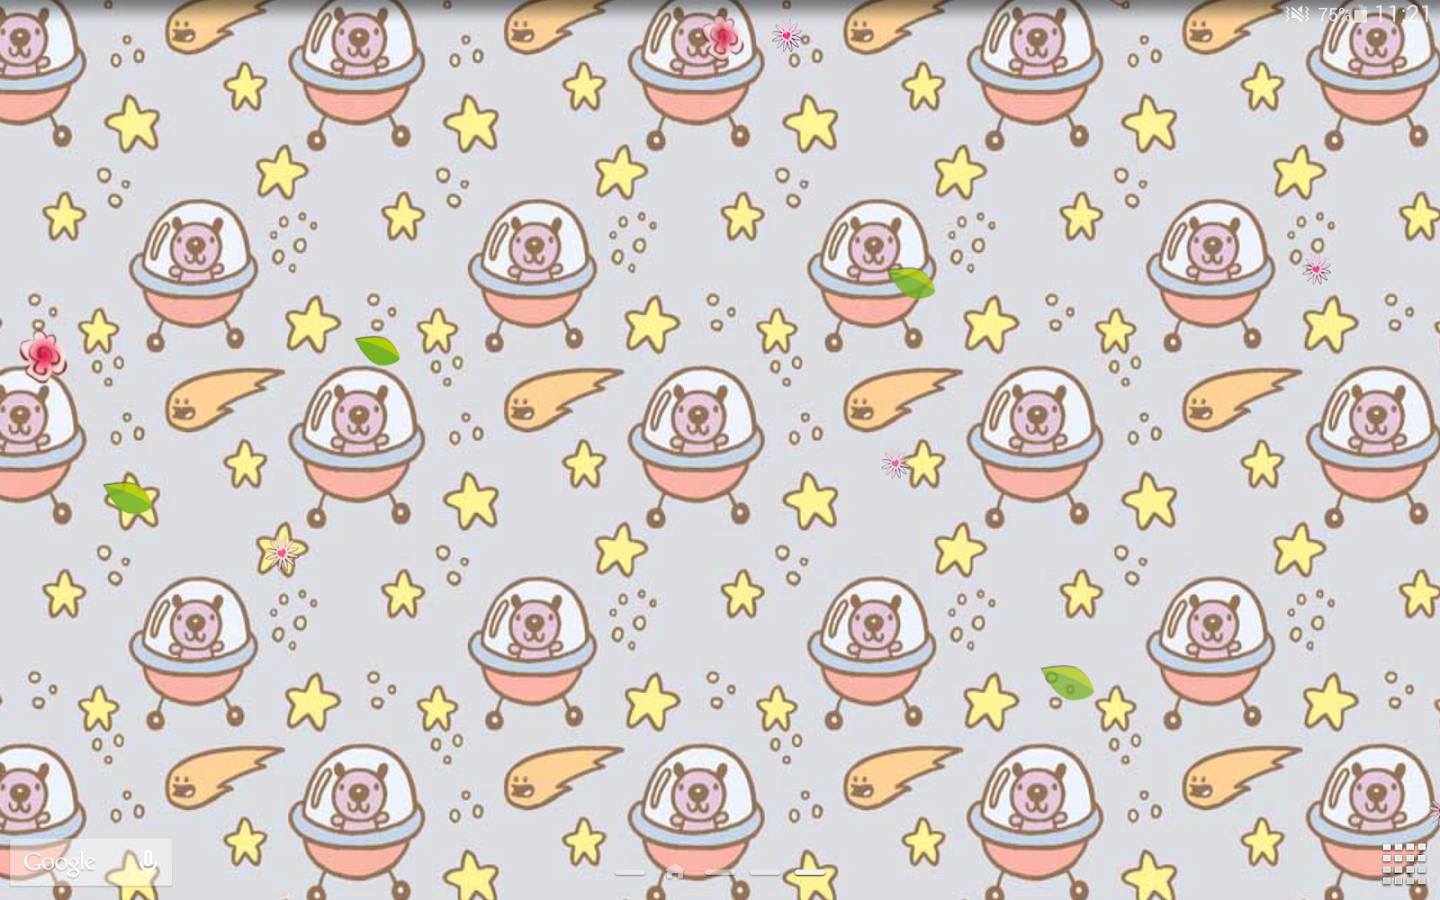 Cute background pattern